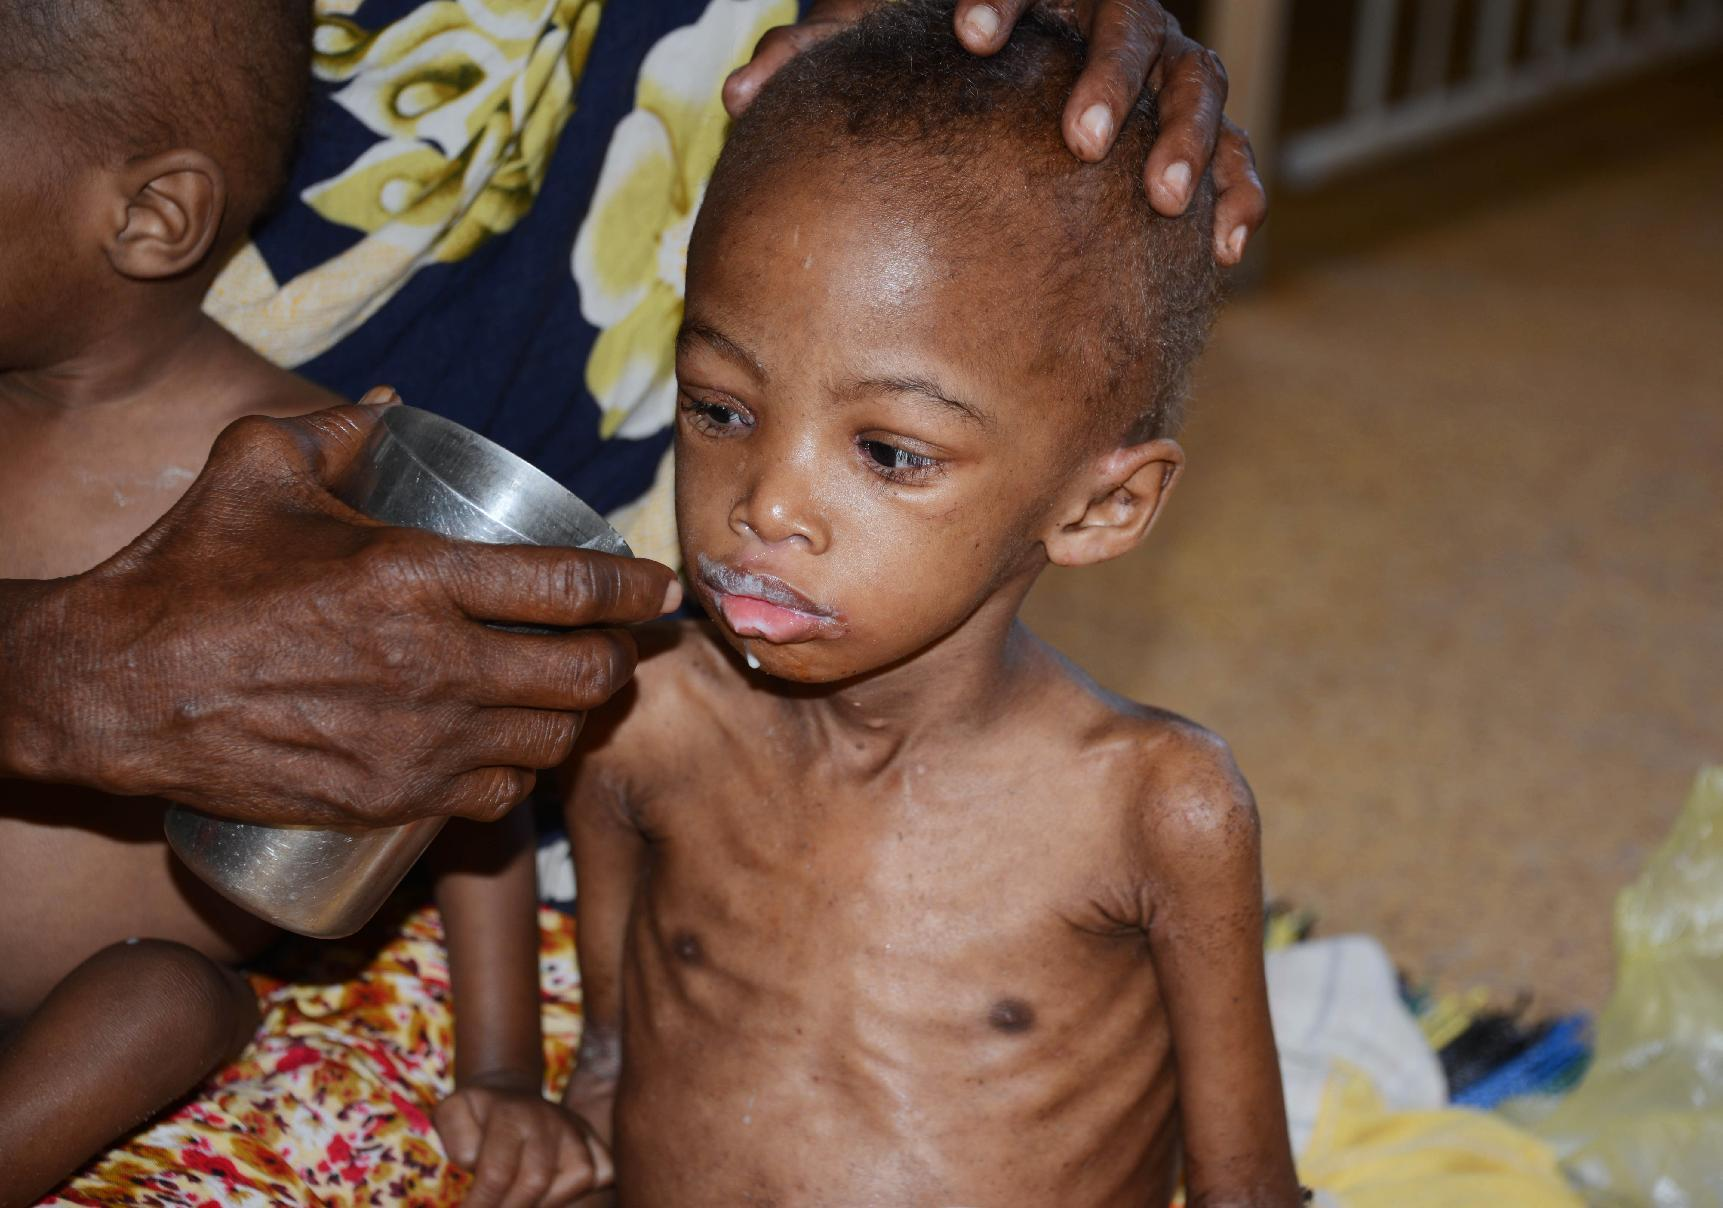 A malnourished child receives a drink in Banadir Hospital in Mogadishu on May 20, 2014